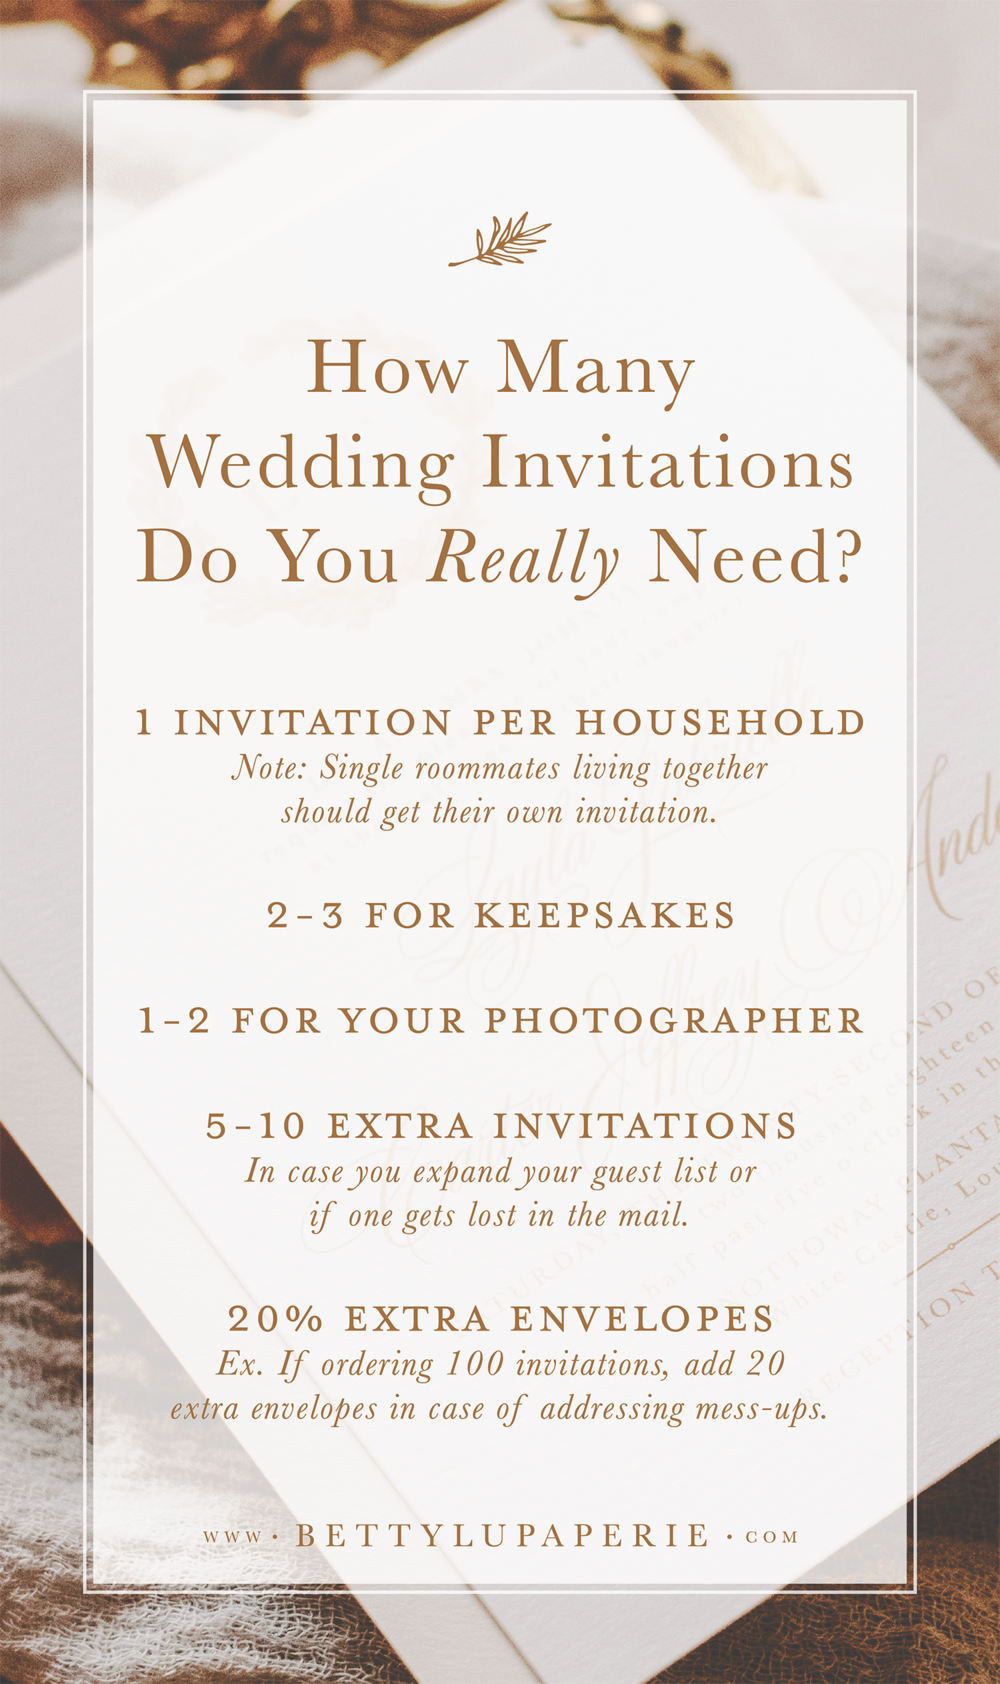 How Many Invitations to Order.png